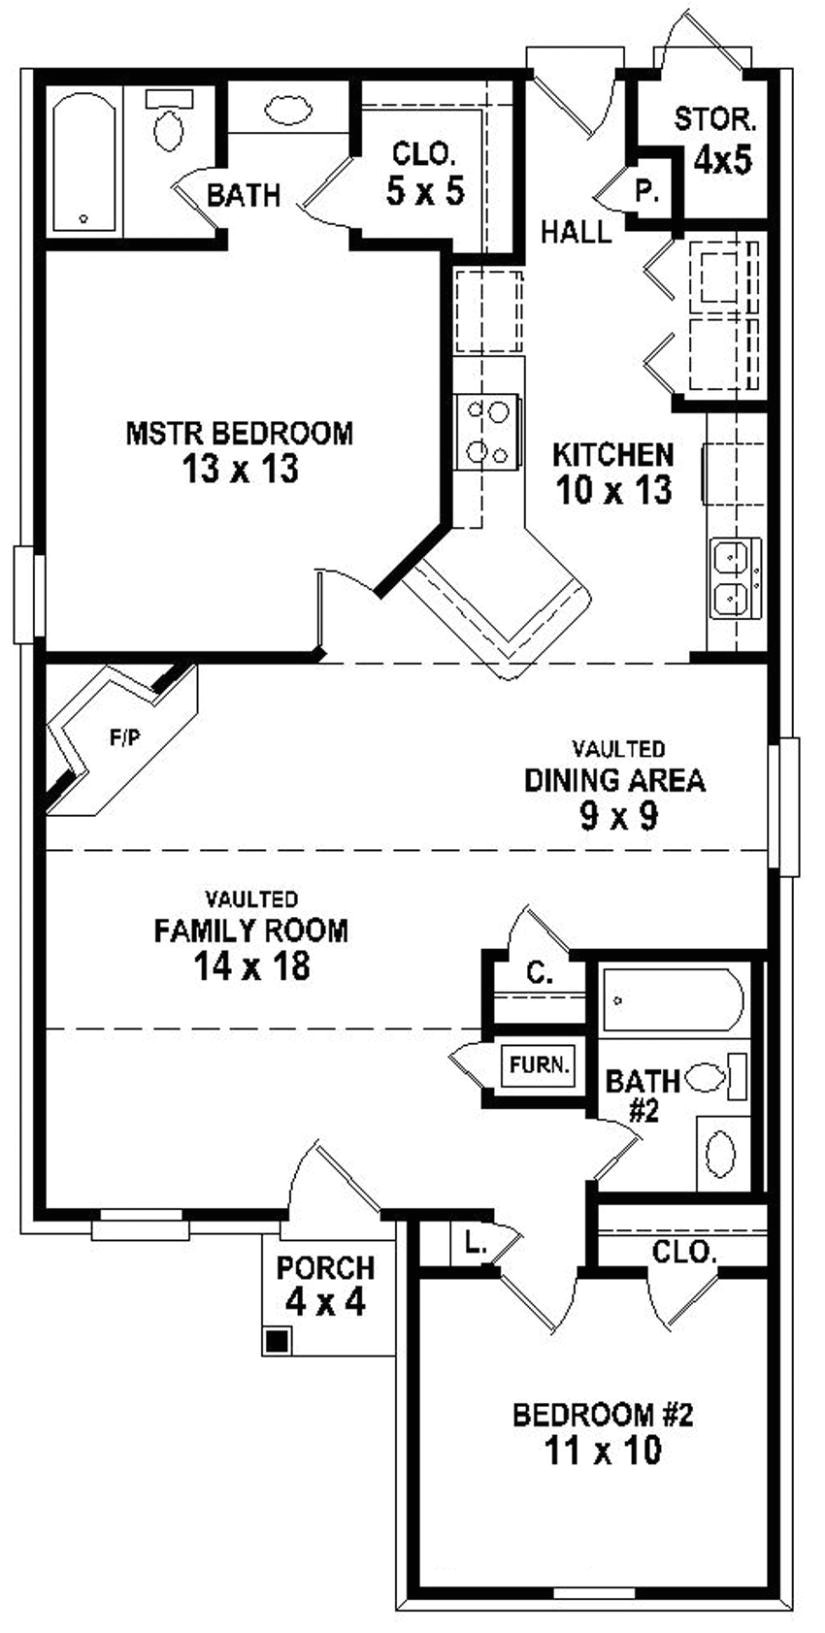 simple bedroom house plans alfa img showing simple one bedroom house plans 2